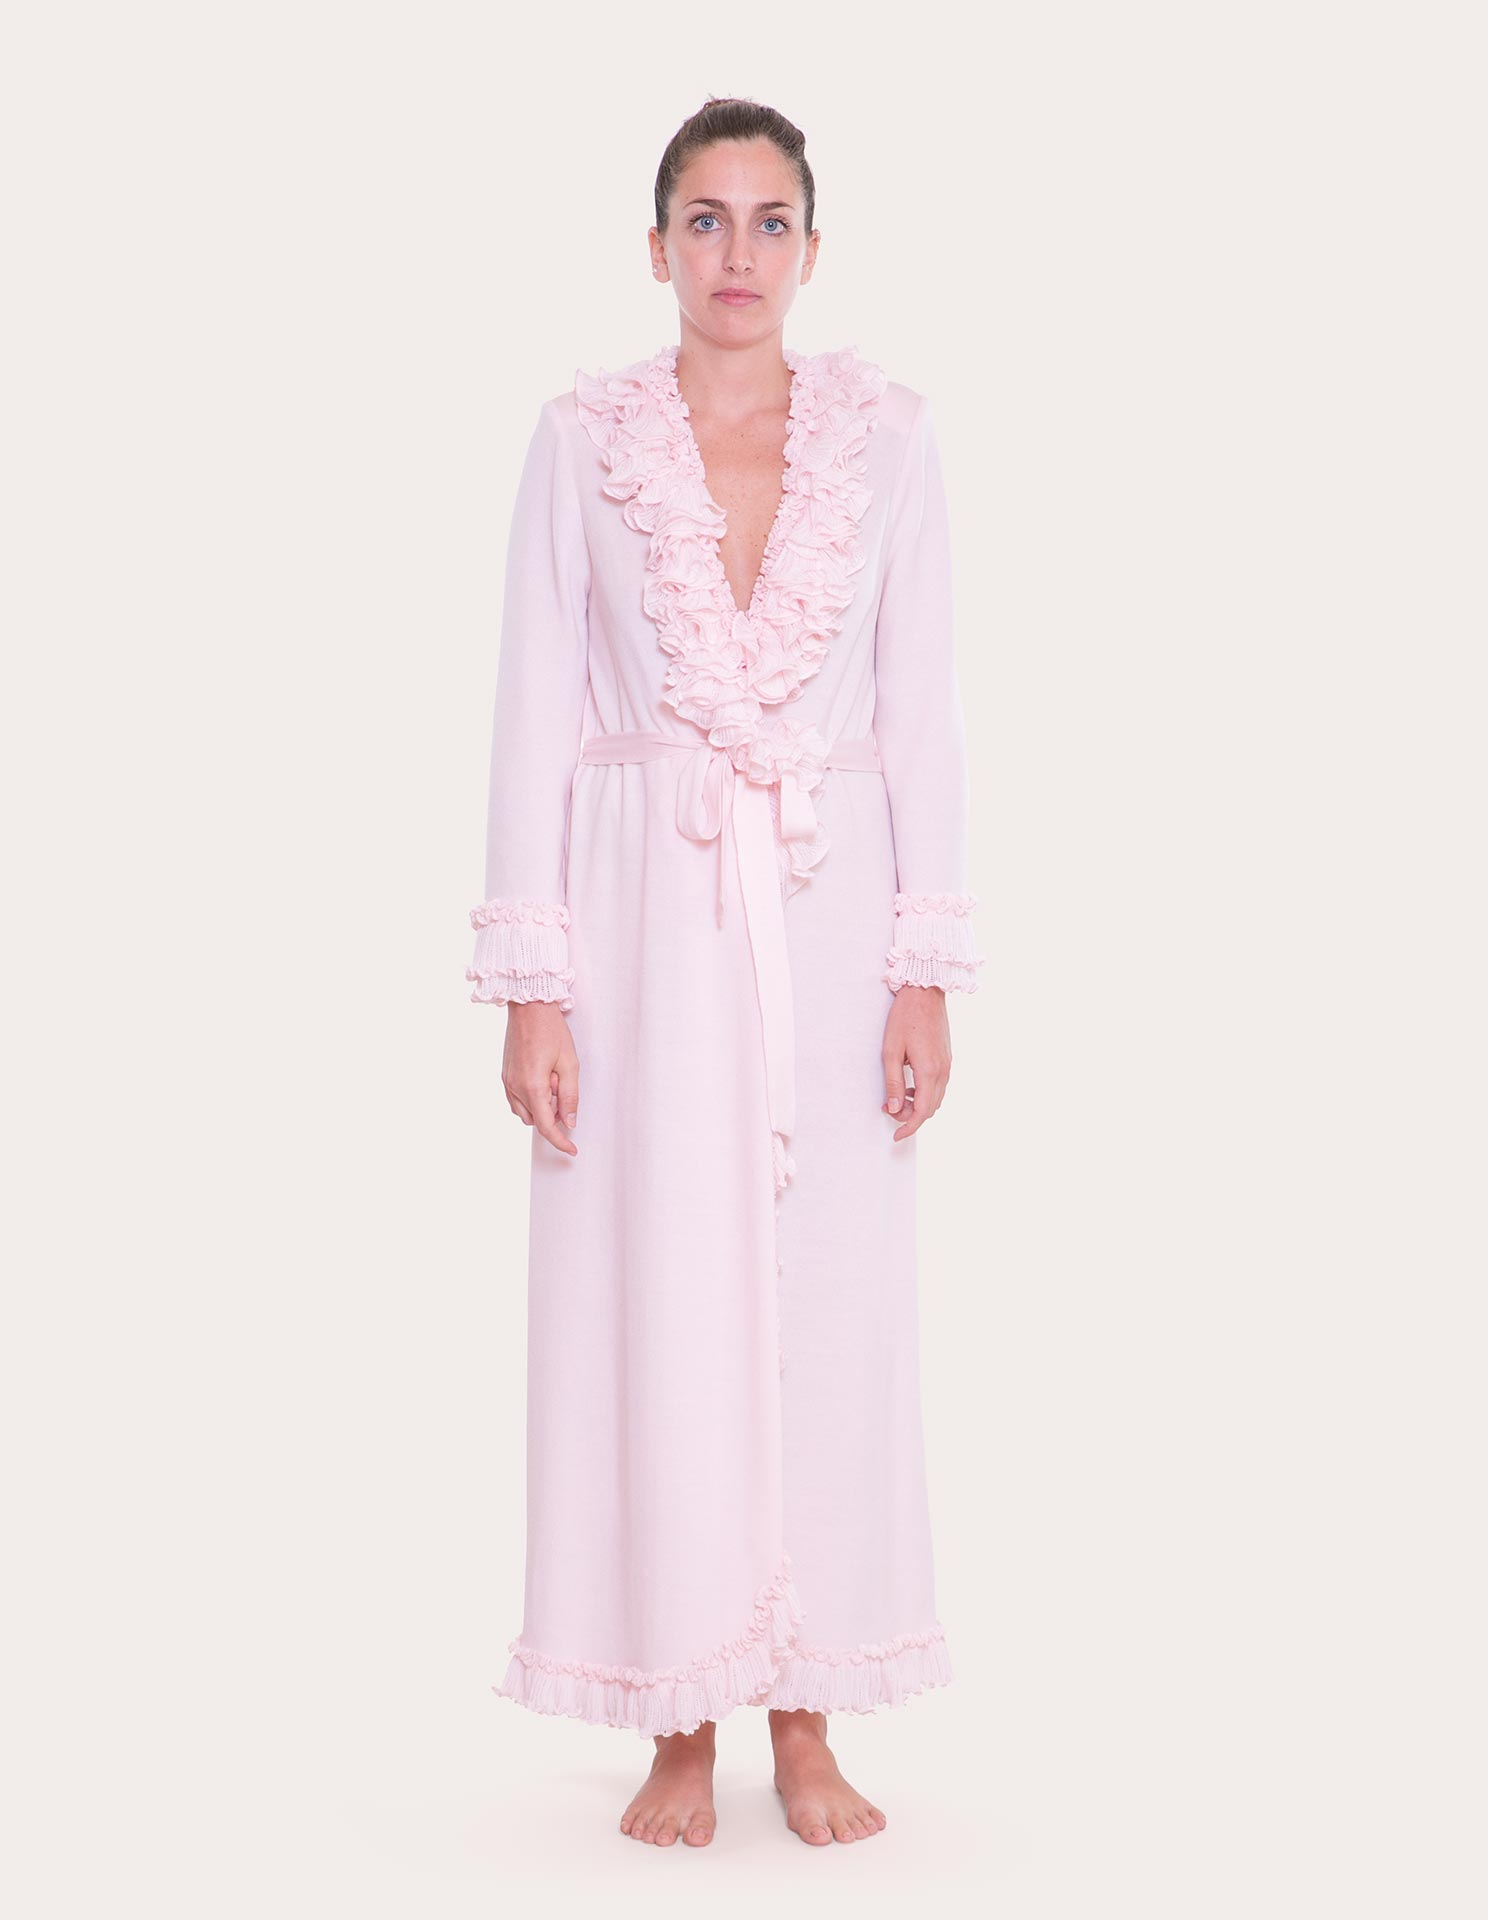 Lorena Pink Cotton Dressing Gown | Alida Ferrini Firenze